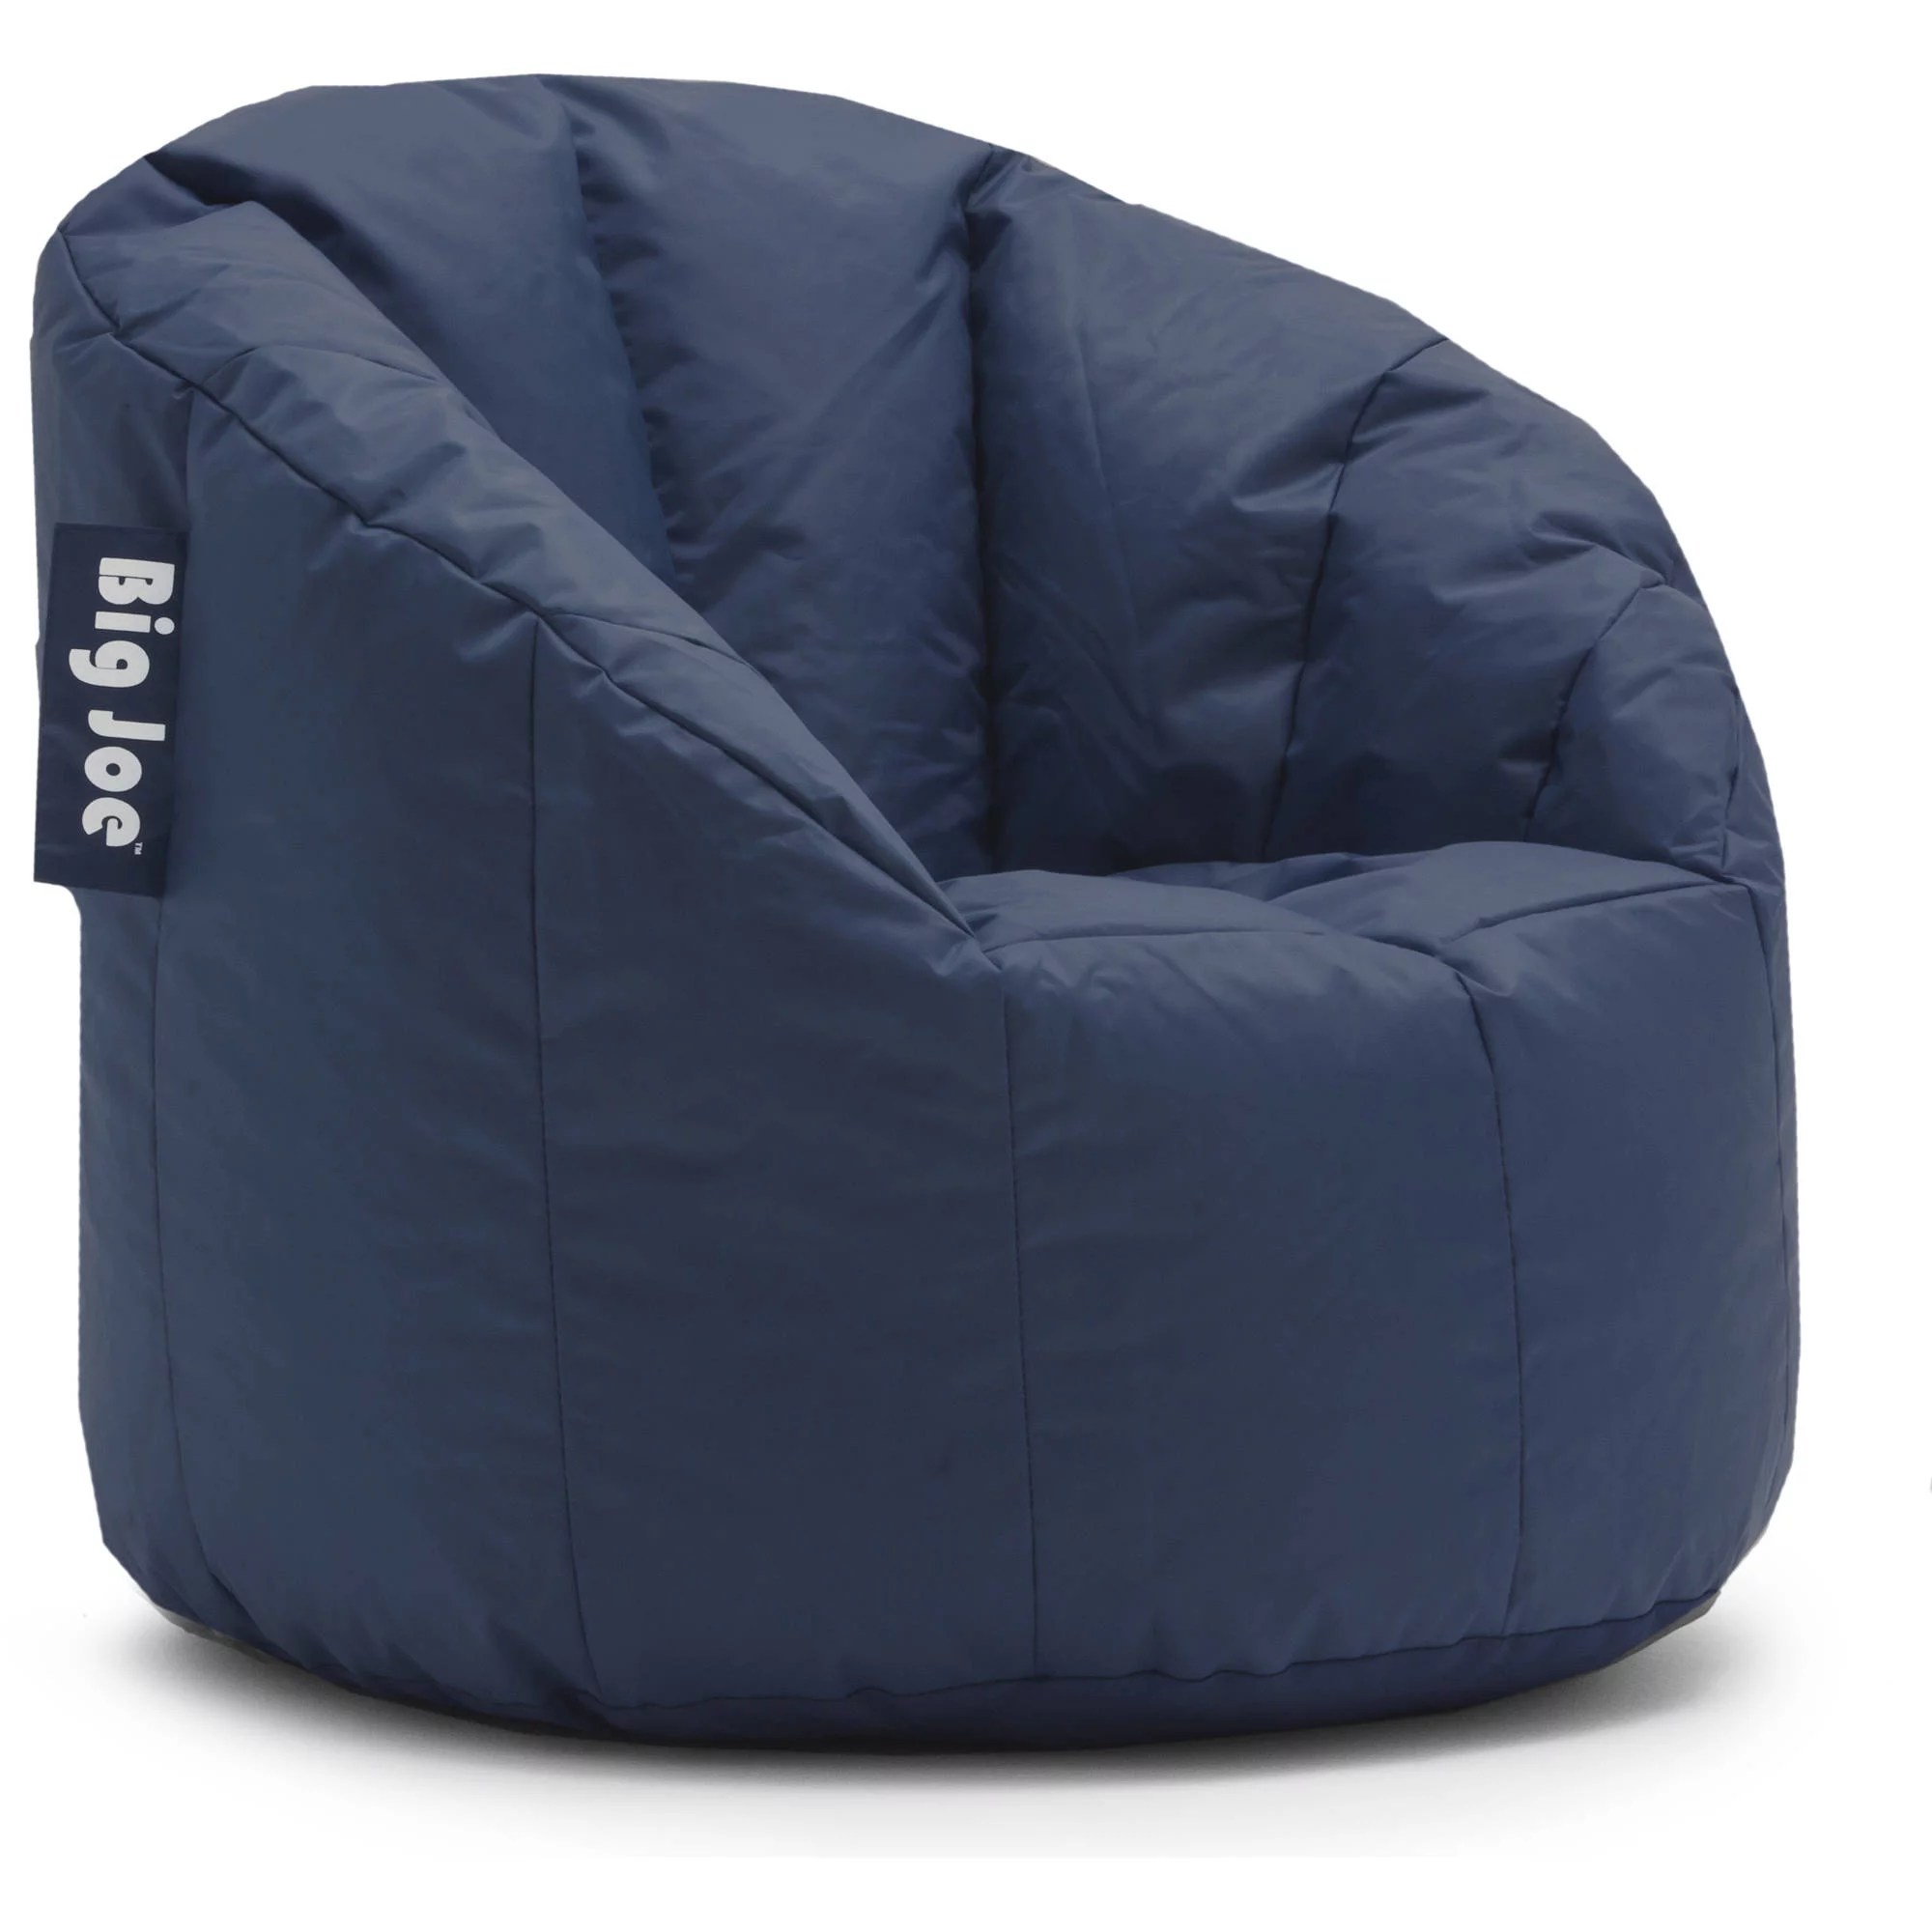 Dorm Room Chairs The Original Big Joe Bean Bag Multiple Colors